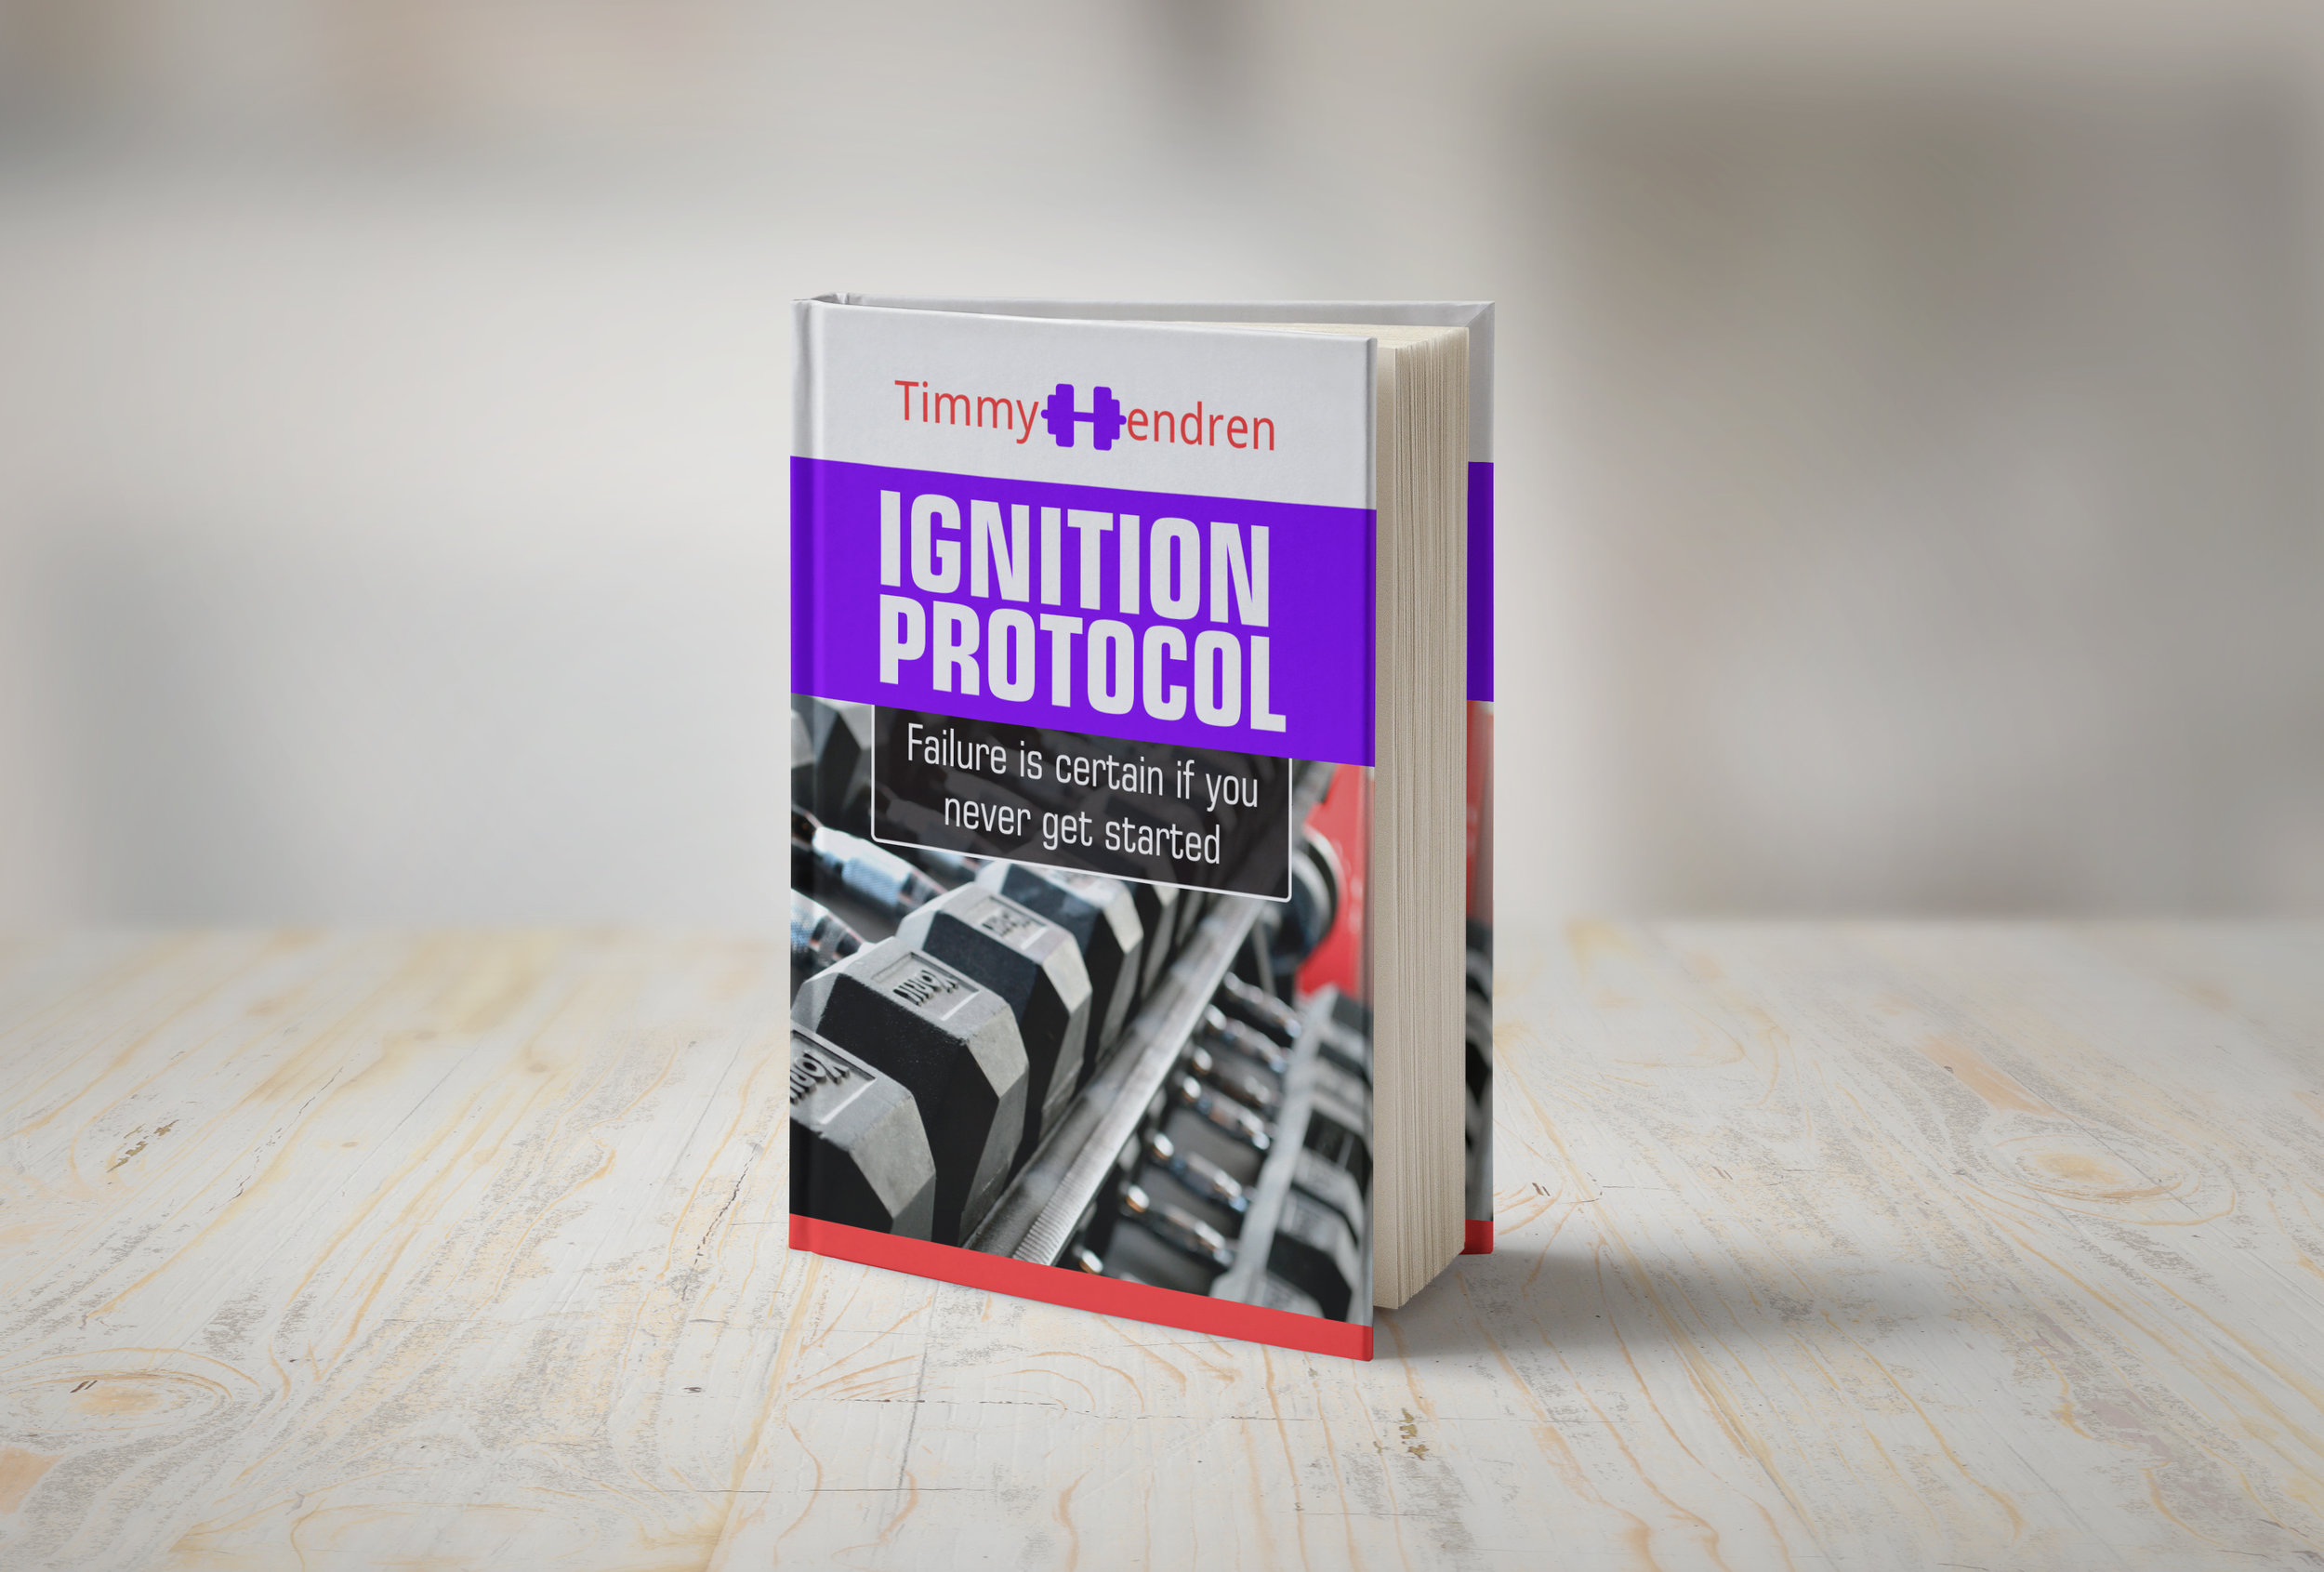 Ignition Protocol: Available now on Amazon, click the image for details!!